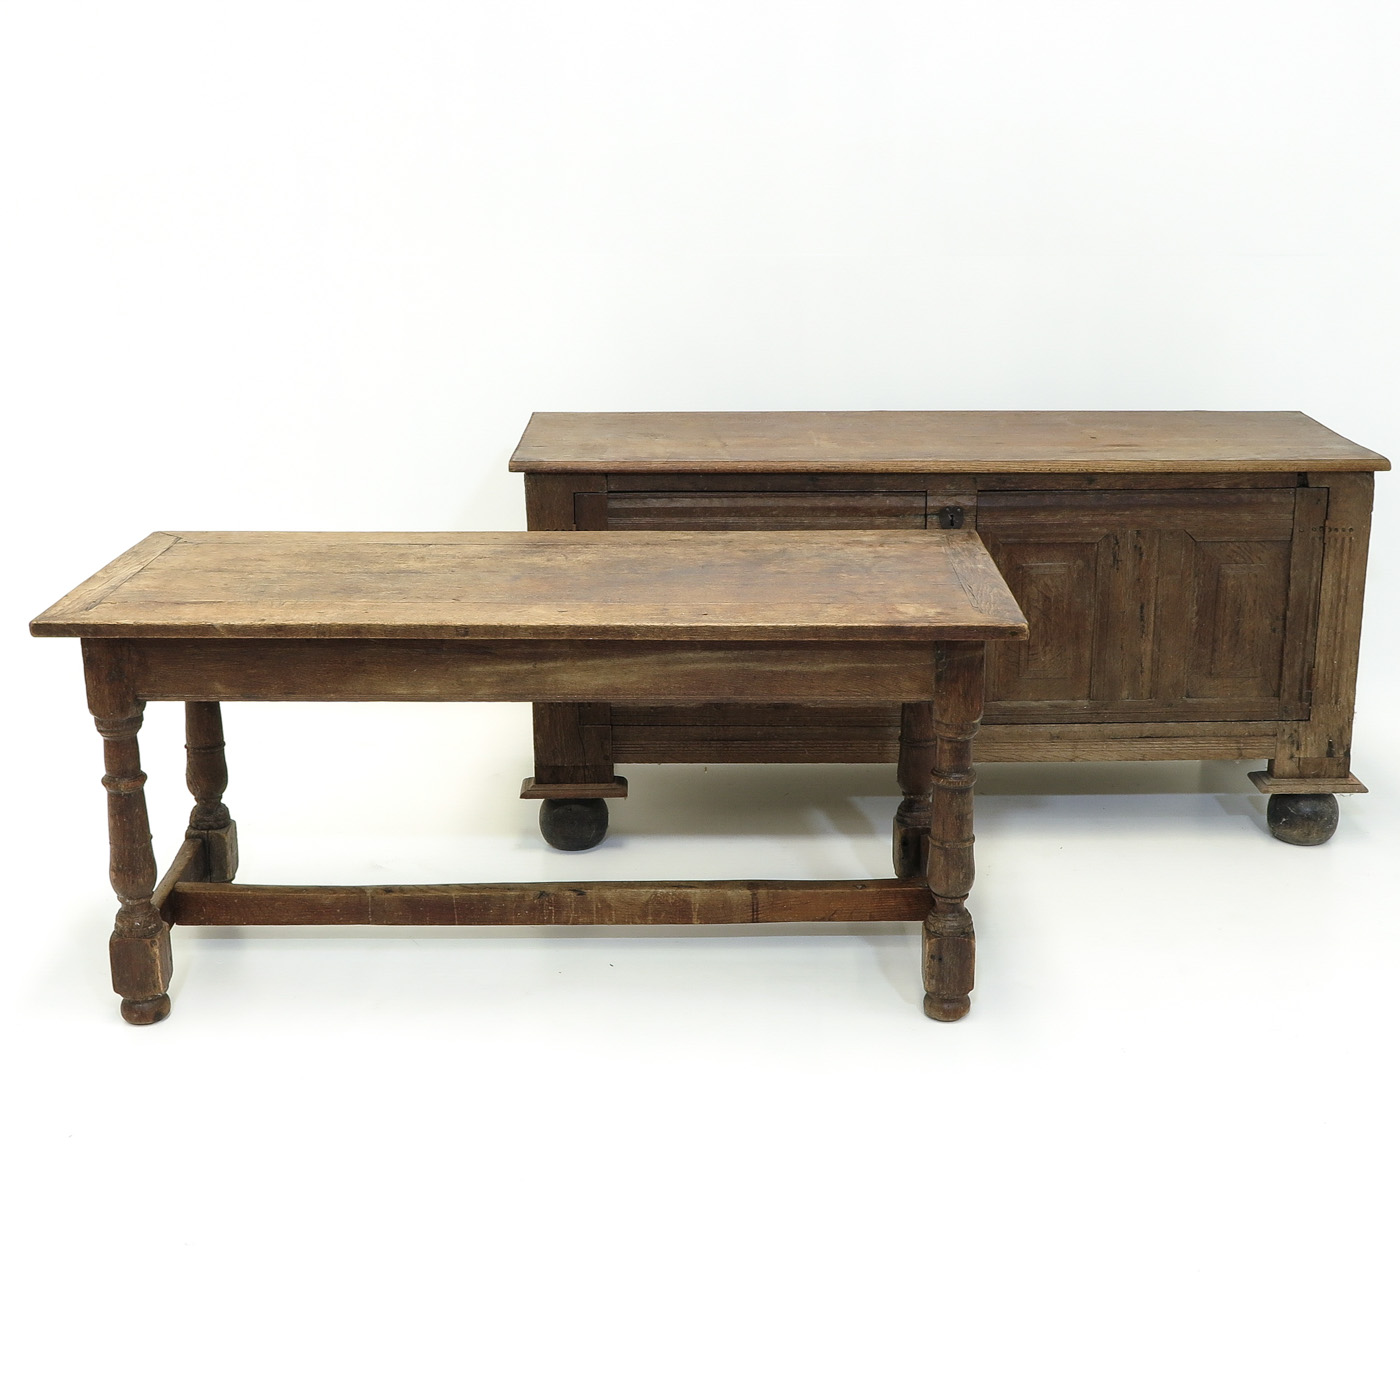 Lot 1018 - A Monastery Table and Oak Sideboard